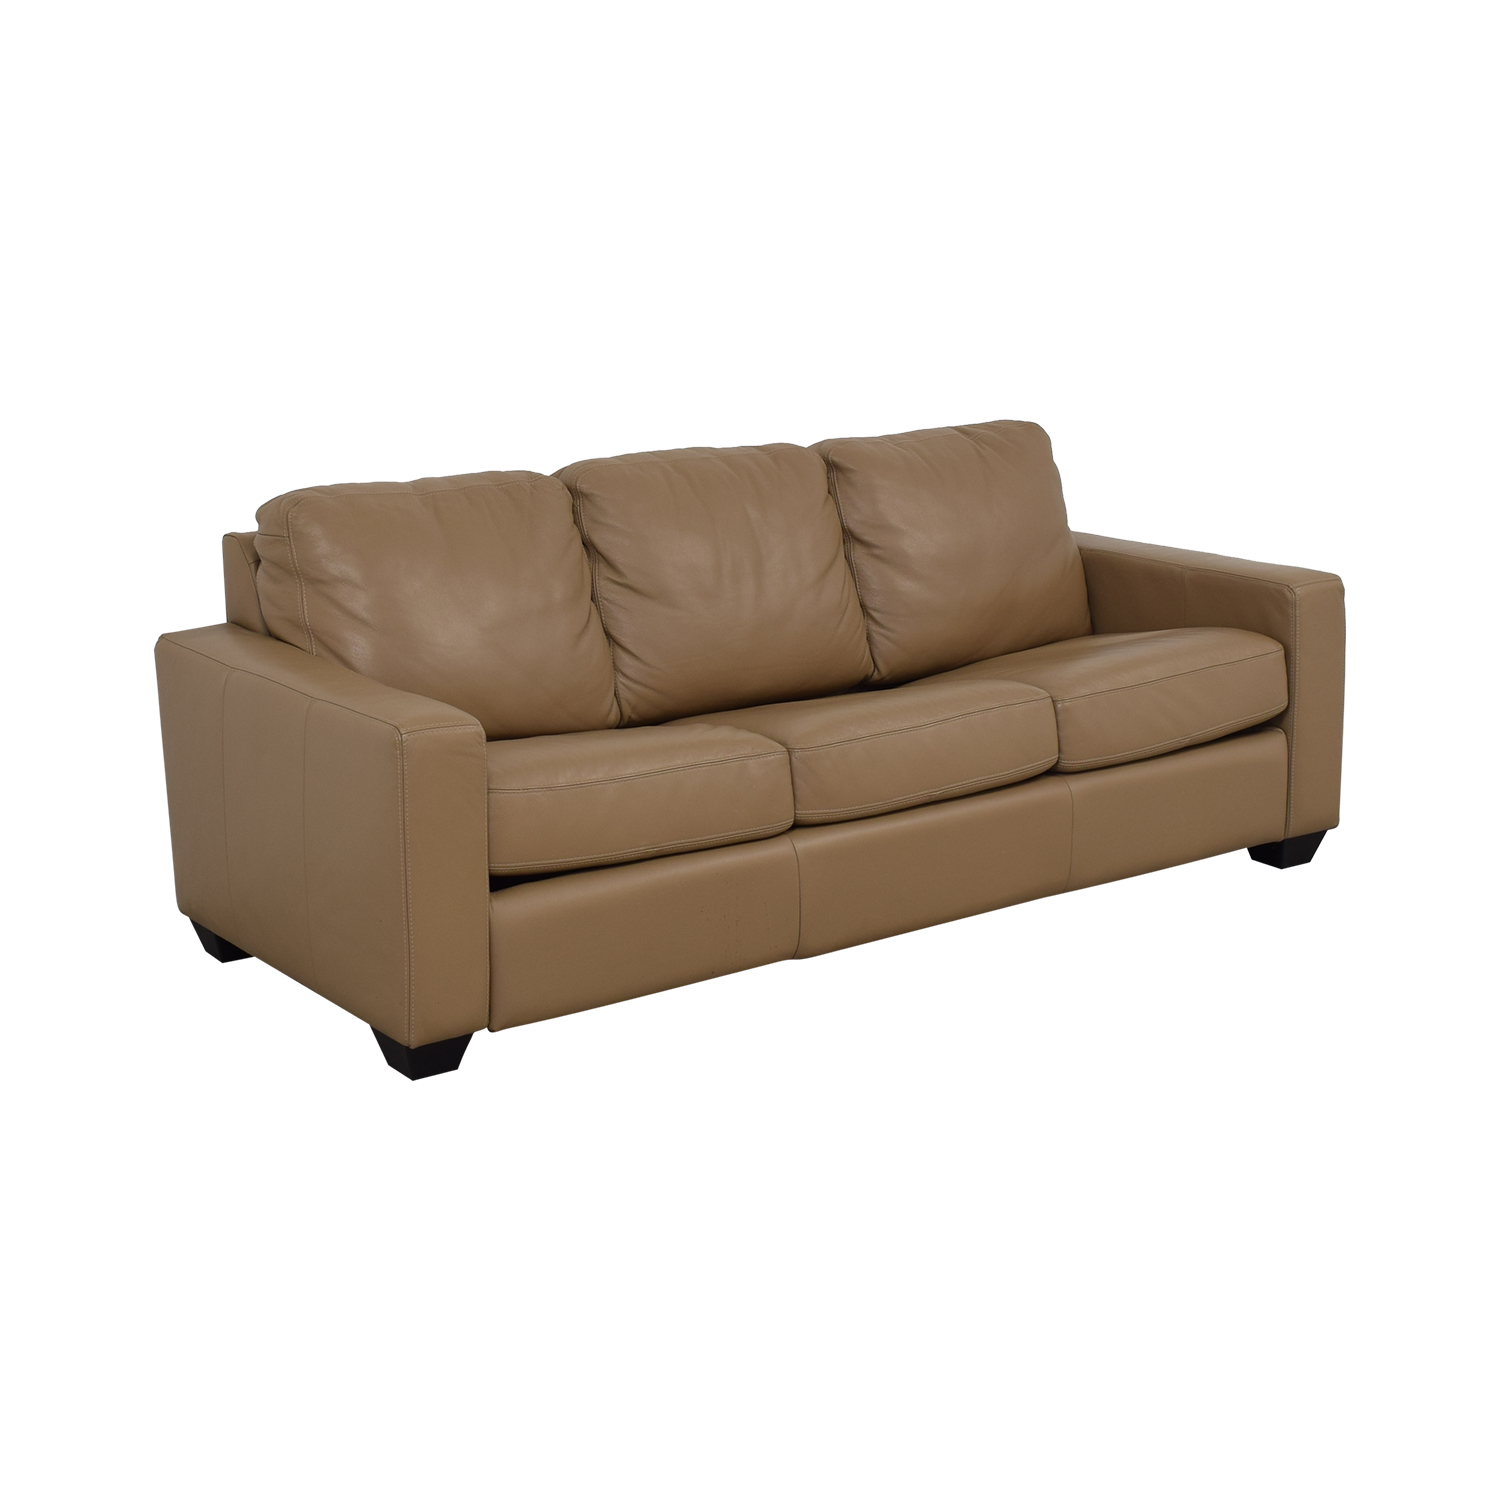 Pleasing 76 Off Jc Penney Jc Penney Leather Sleeper Sofa Sofas Beutiful Home Inspiration Ommitmahrainfo